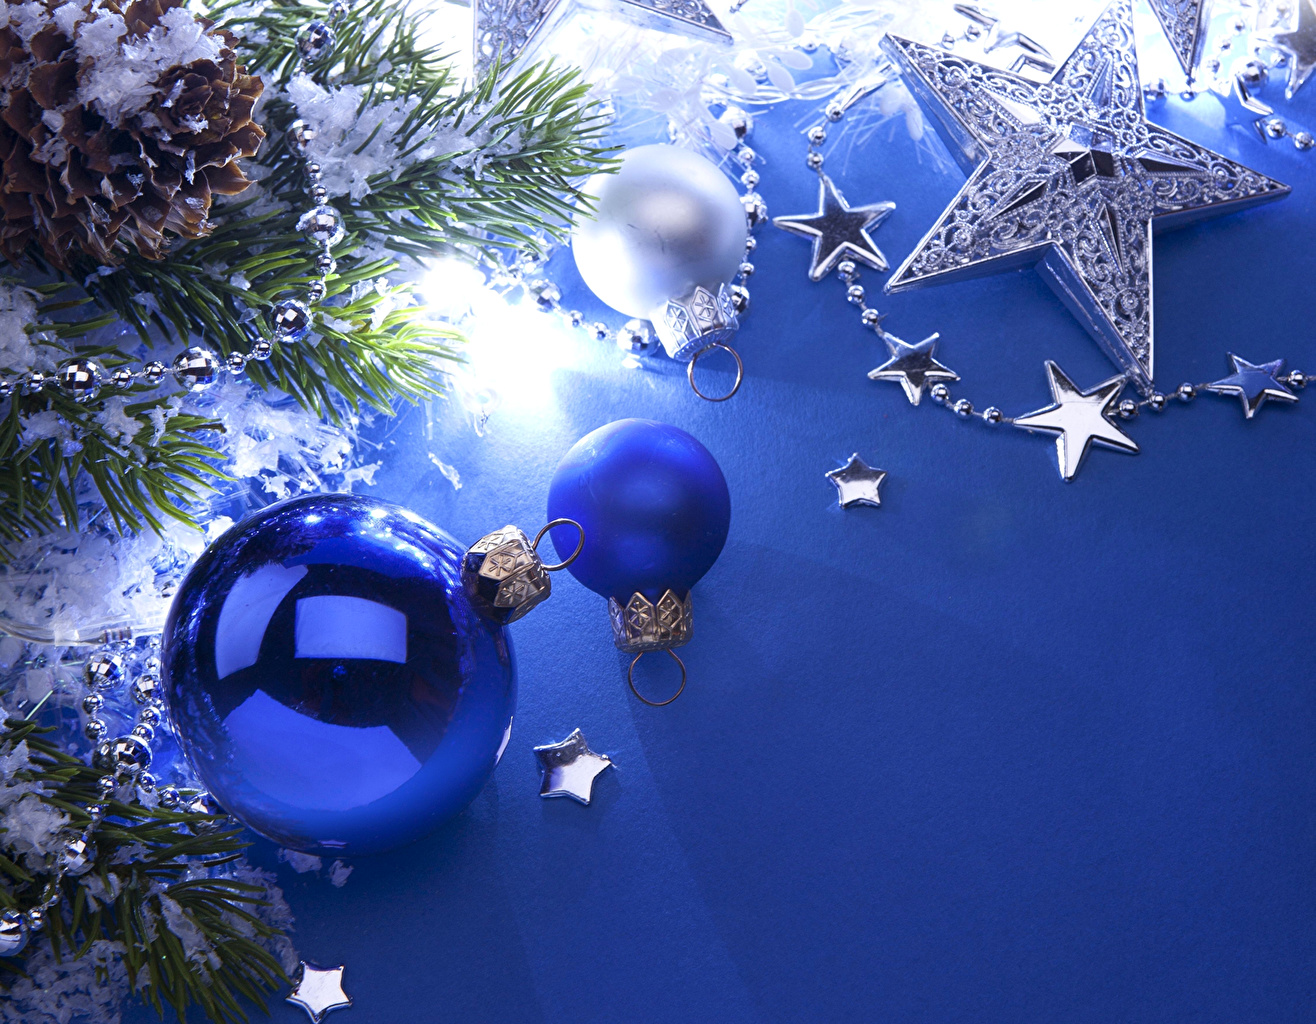 Desktop Wallpapers New year Blue Balls Branches Holidays